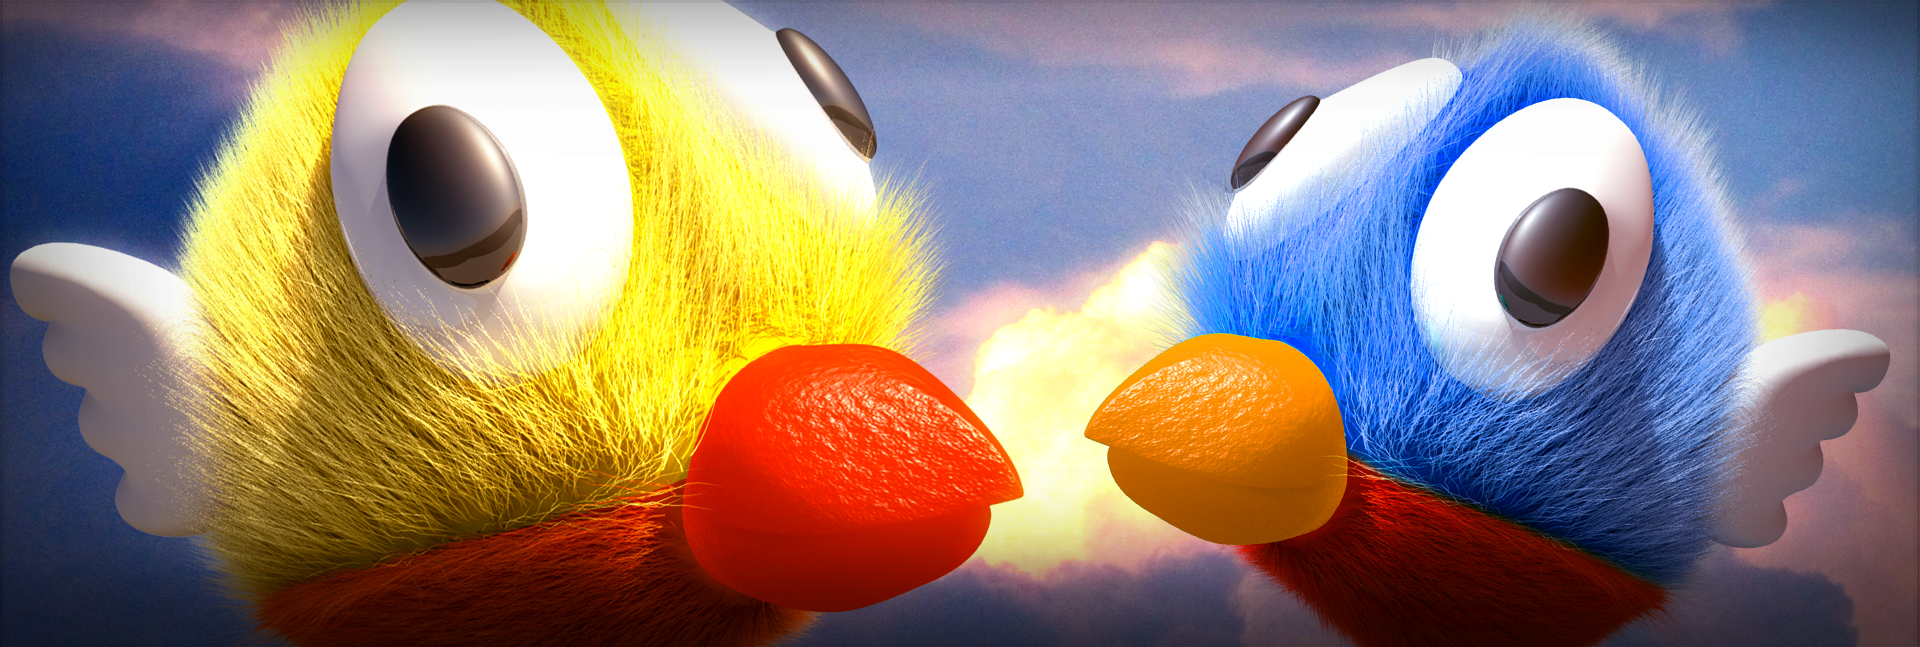 FLAPPY 3D IS AVAILABLE FOR FREE FROM THE APP STORE